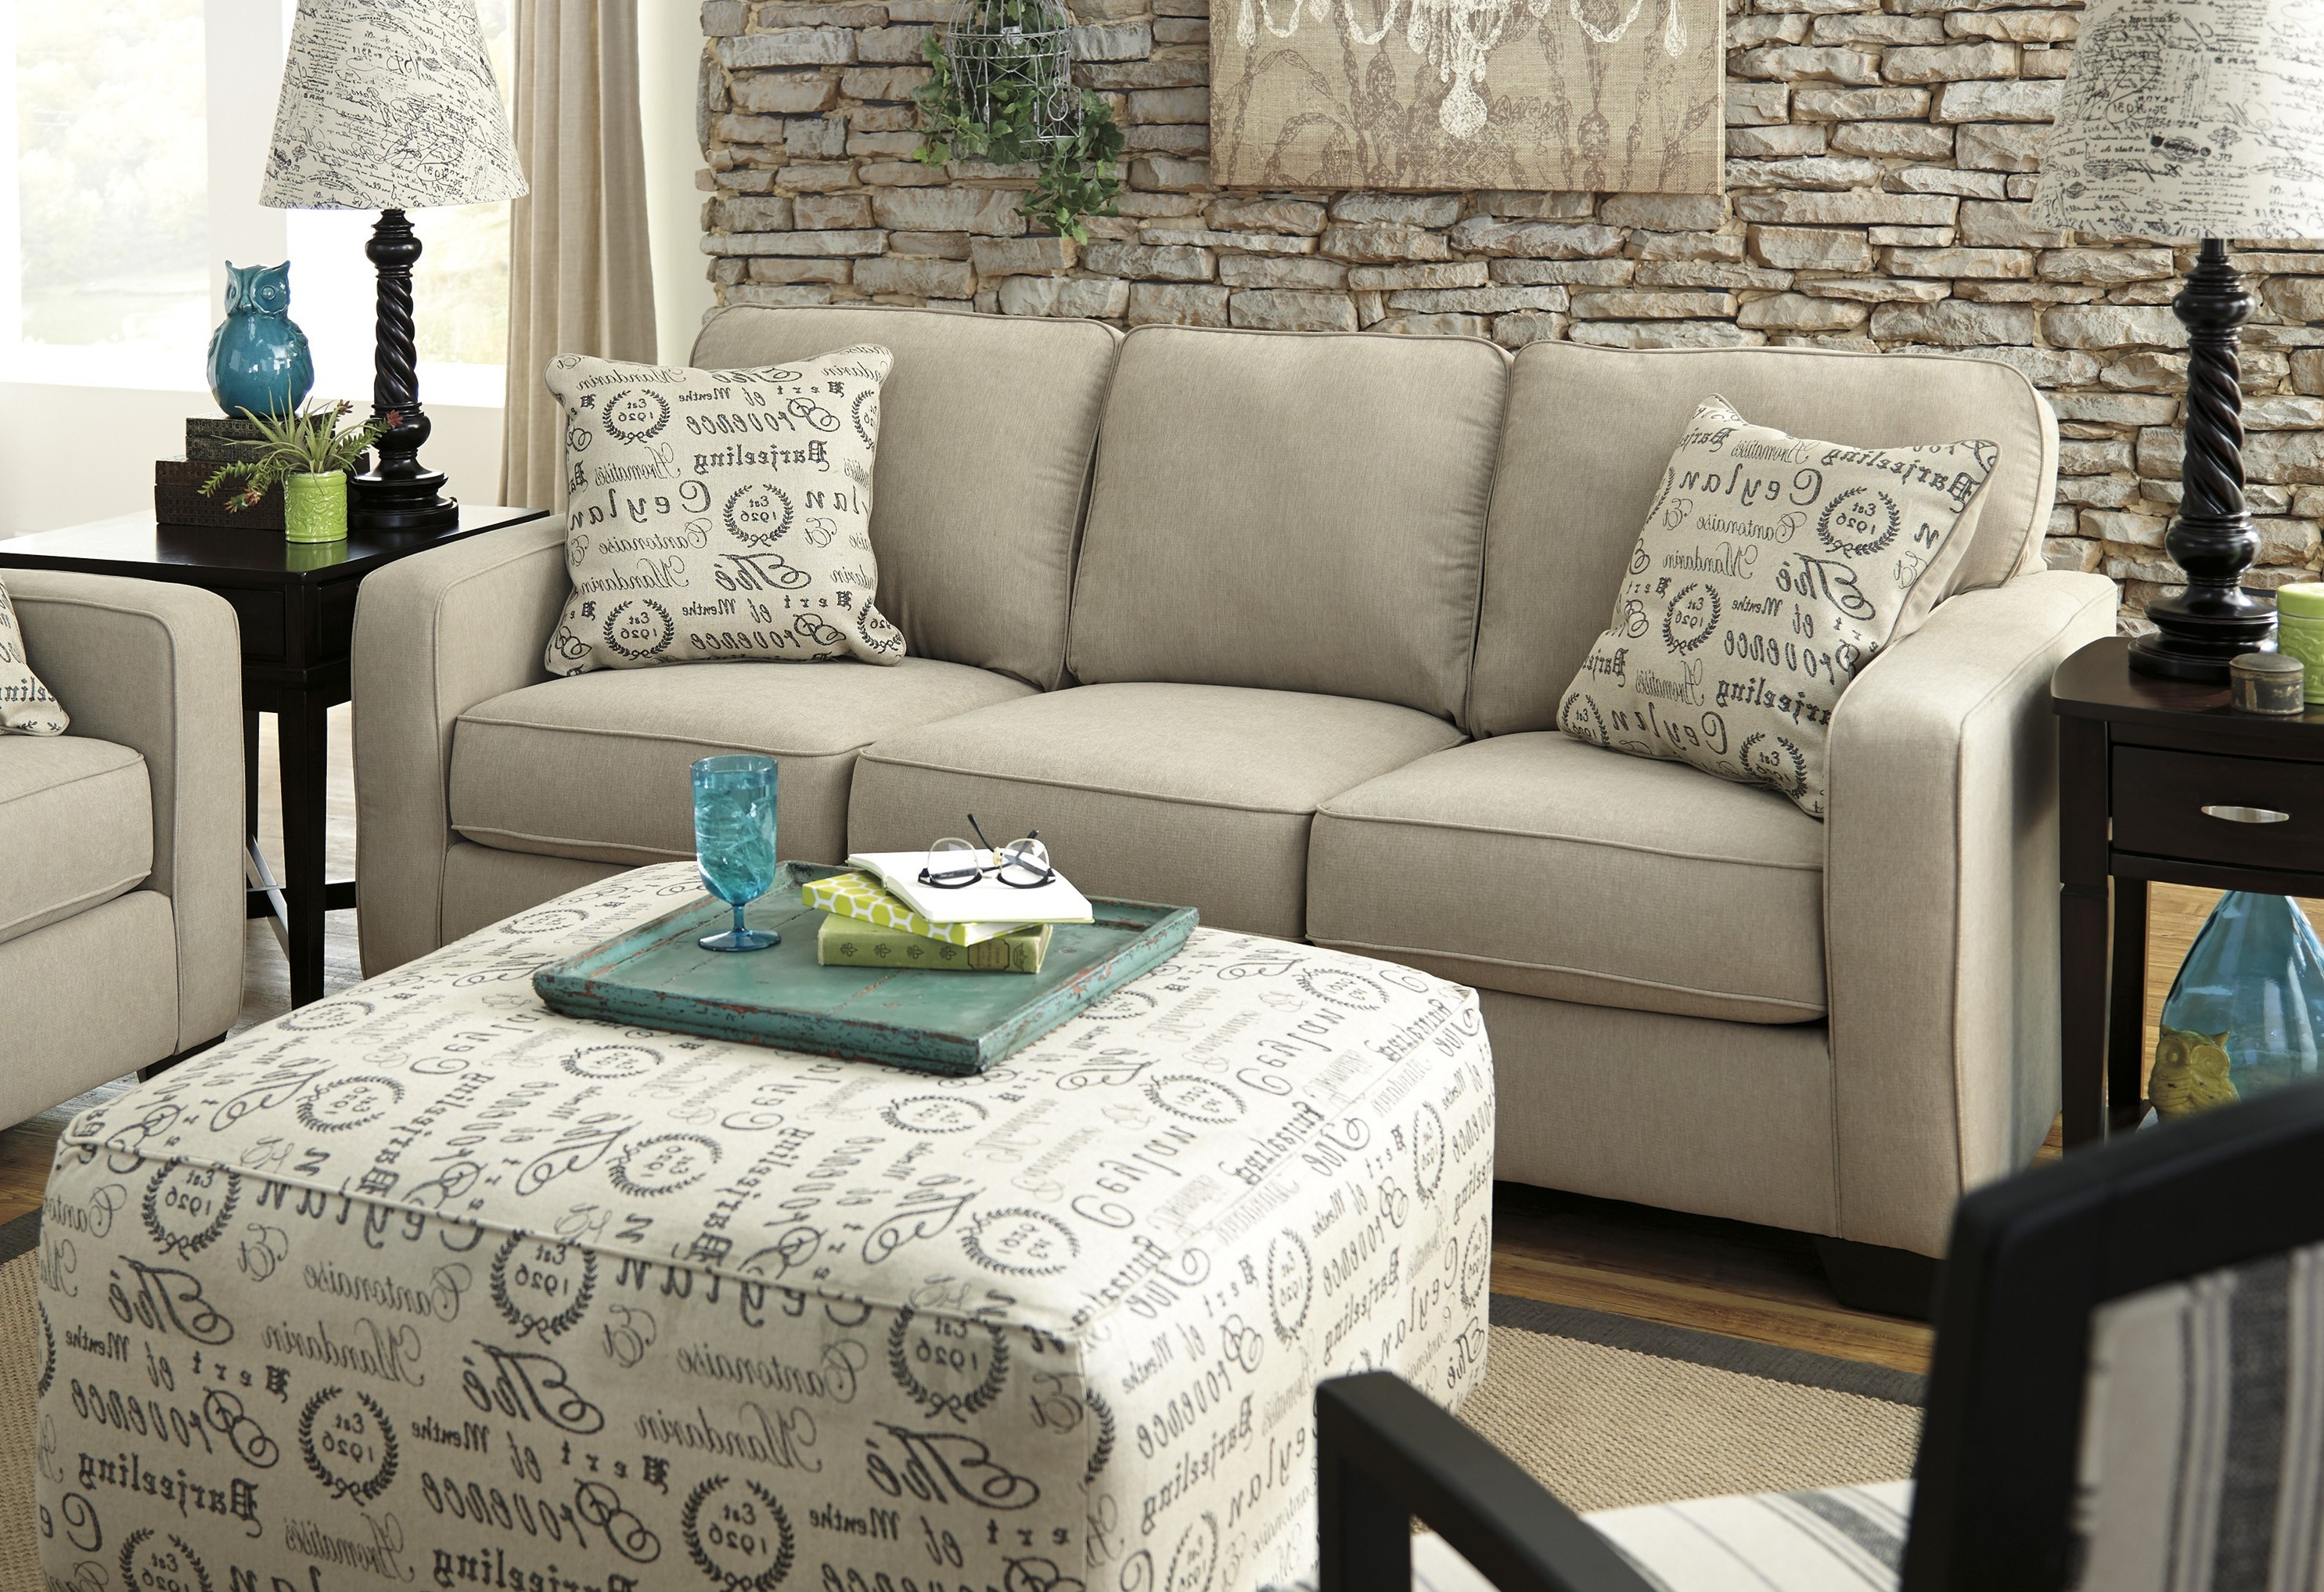 Empire Furniture Rental Coupons near me in Maryland